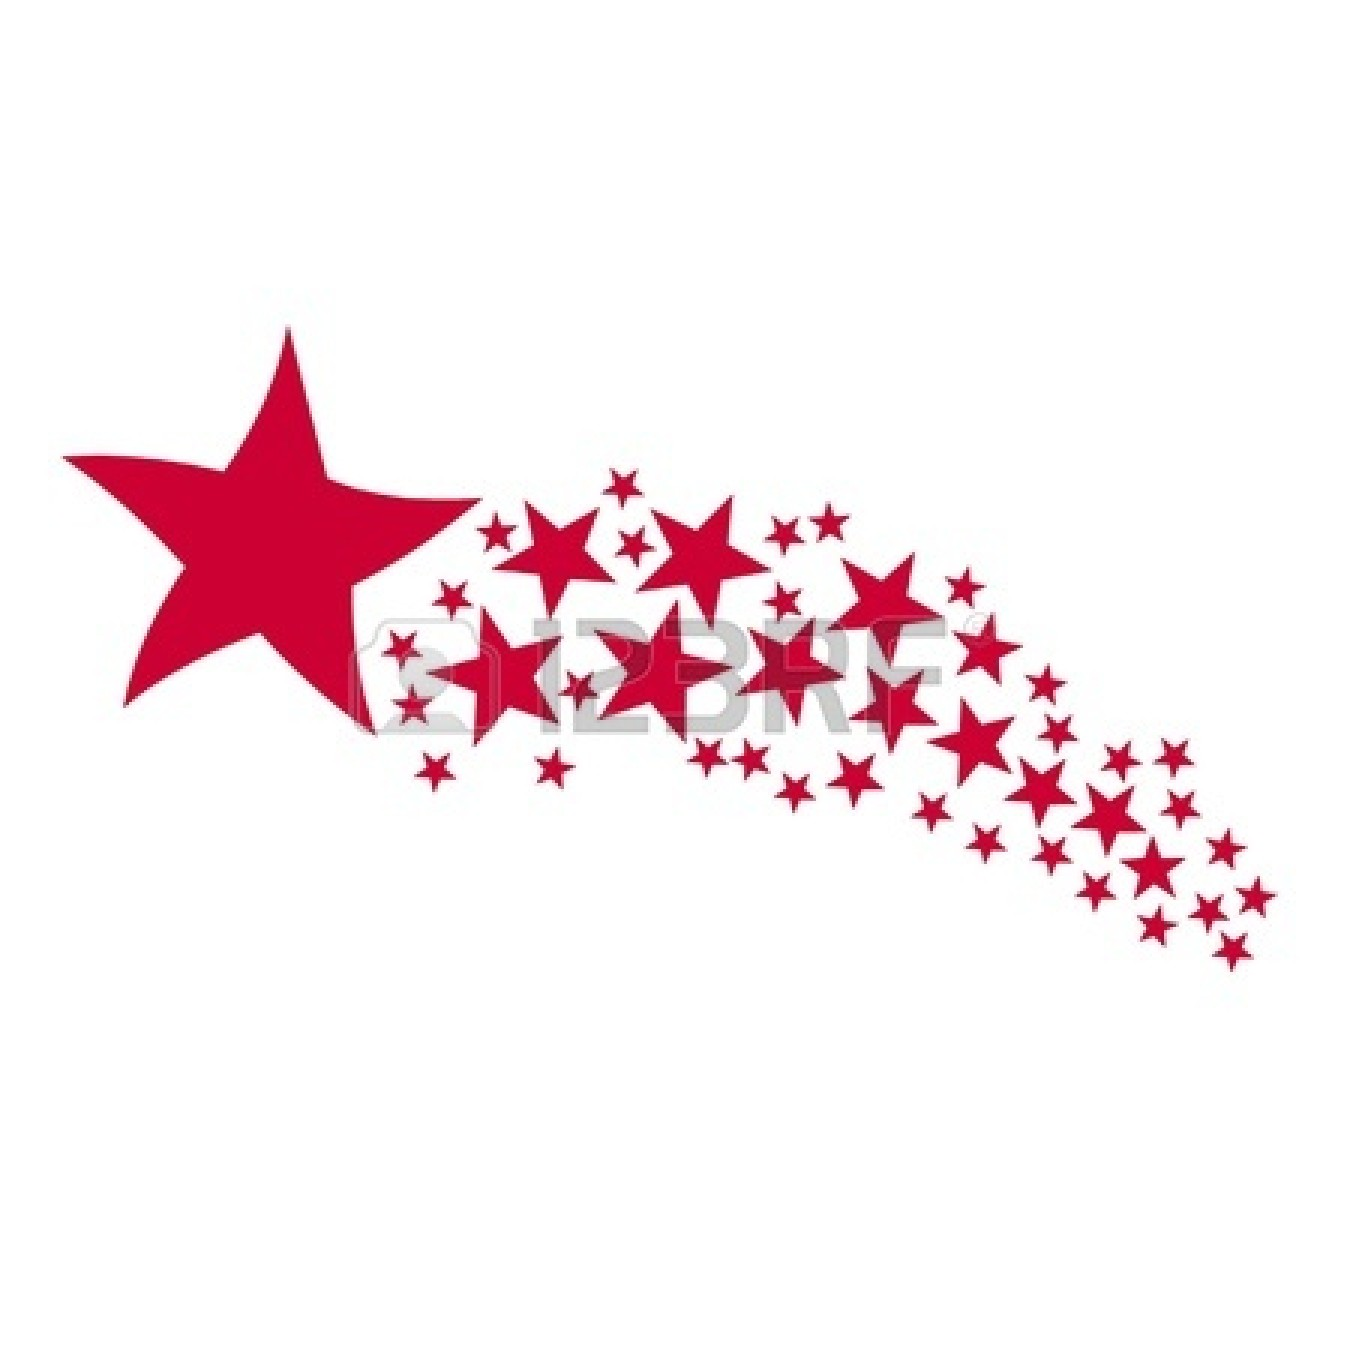 Shooting Star clipart twinkle star Clip Free Background My Clip